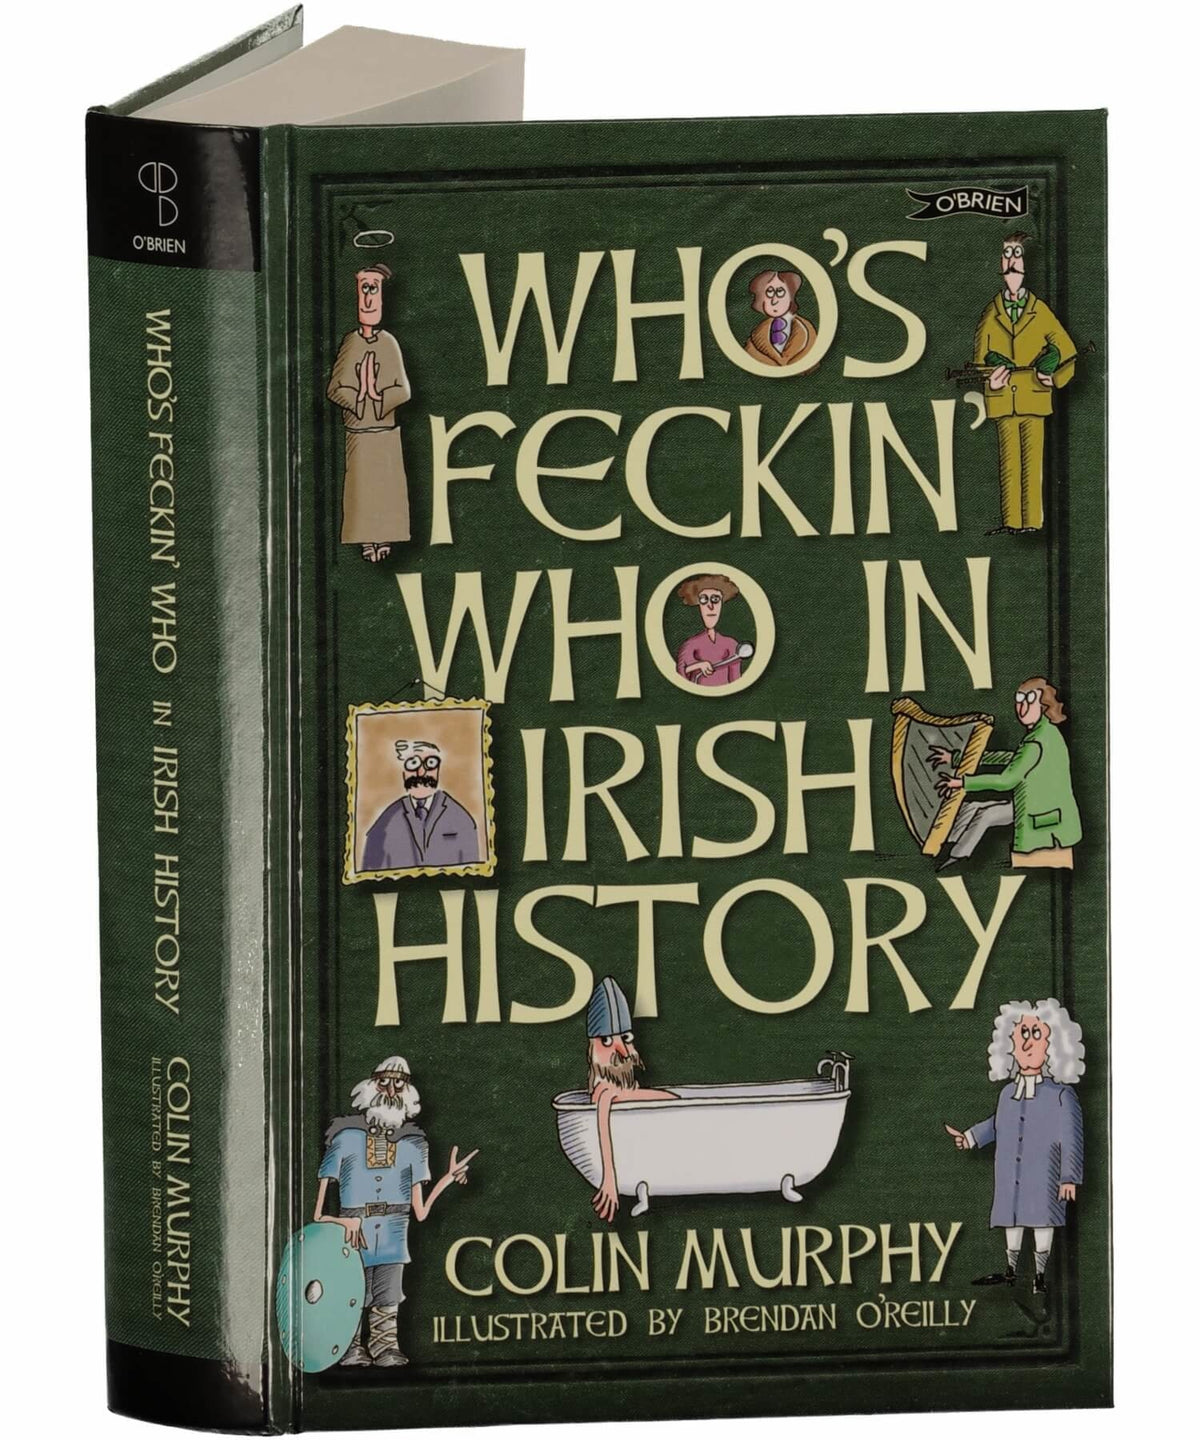 Feckin' Collection: Who's Who - [The O'Brien Press] - Books & Stationery - Irish Gifts